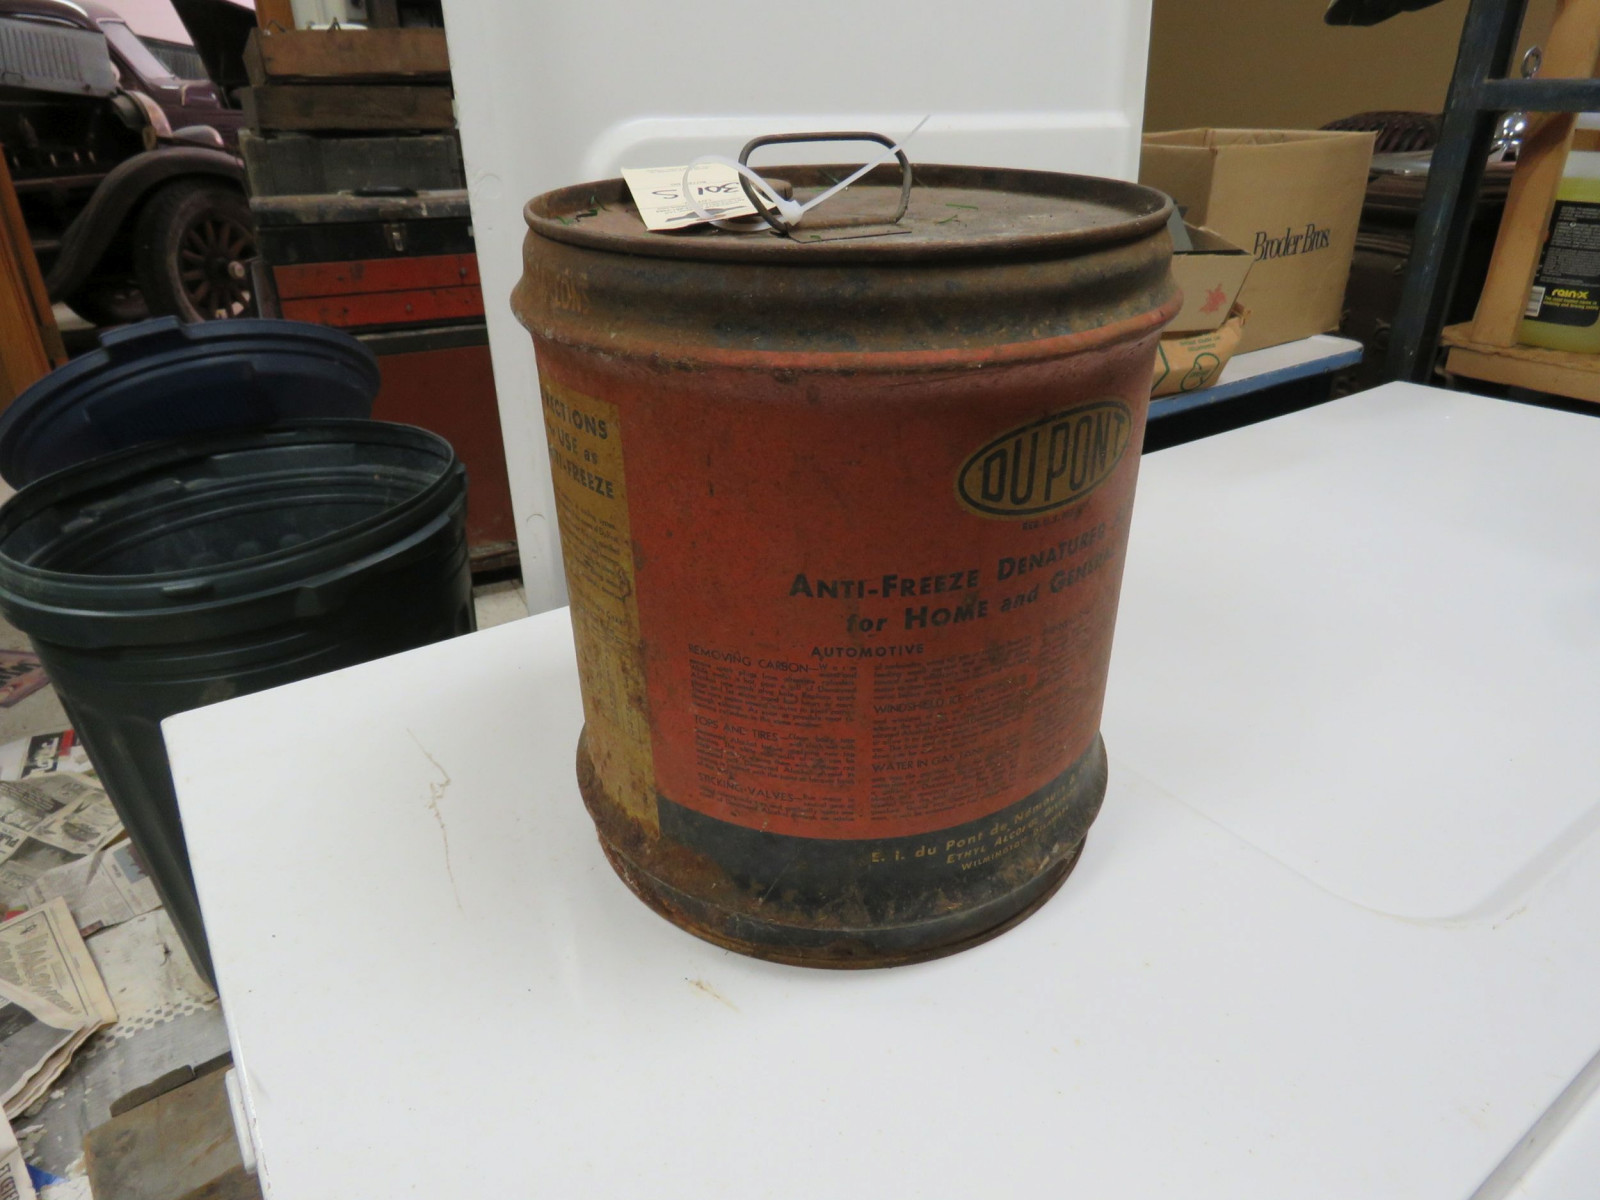 Dupont alcohol 5 Gallon can Empty - Image 3